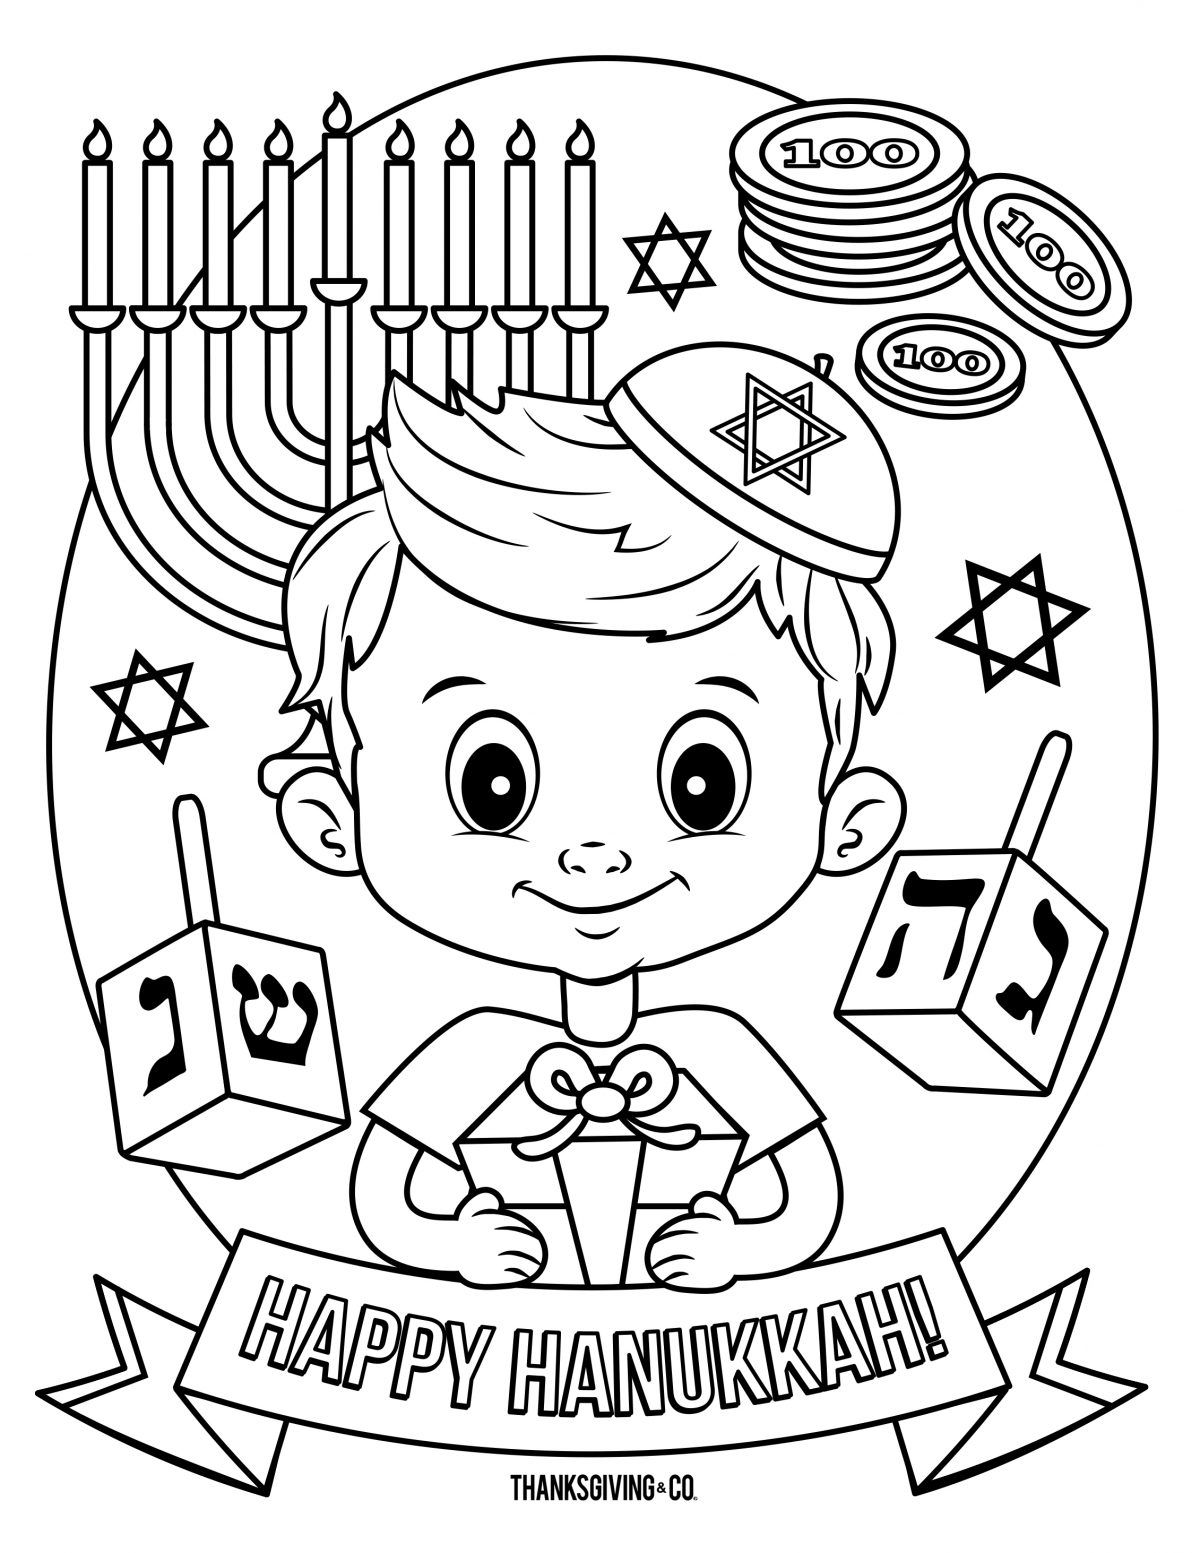 4 Hanukkah Coloring Pages You Can Print And Share With Your Kids Coloring Pages Unique Coloring Pages Printable Coloring Pages [ 1553 x 1200 Pixel ]